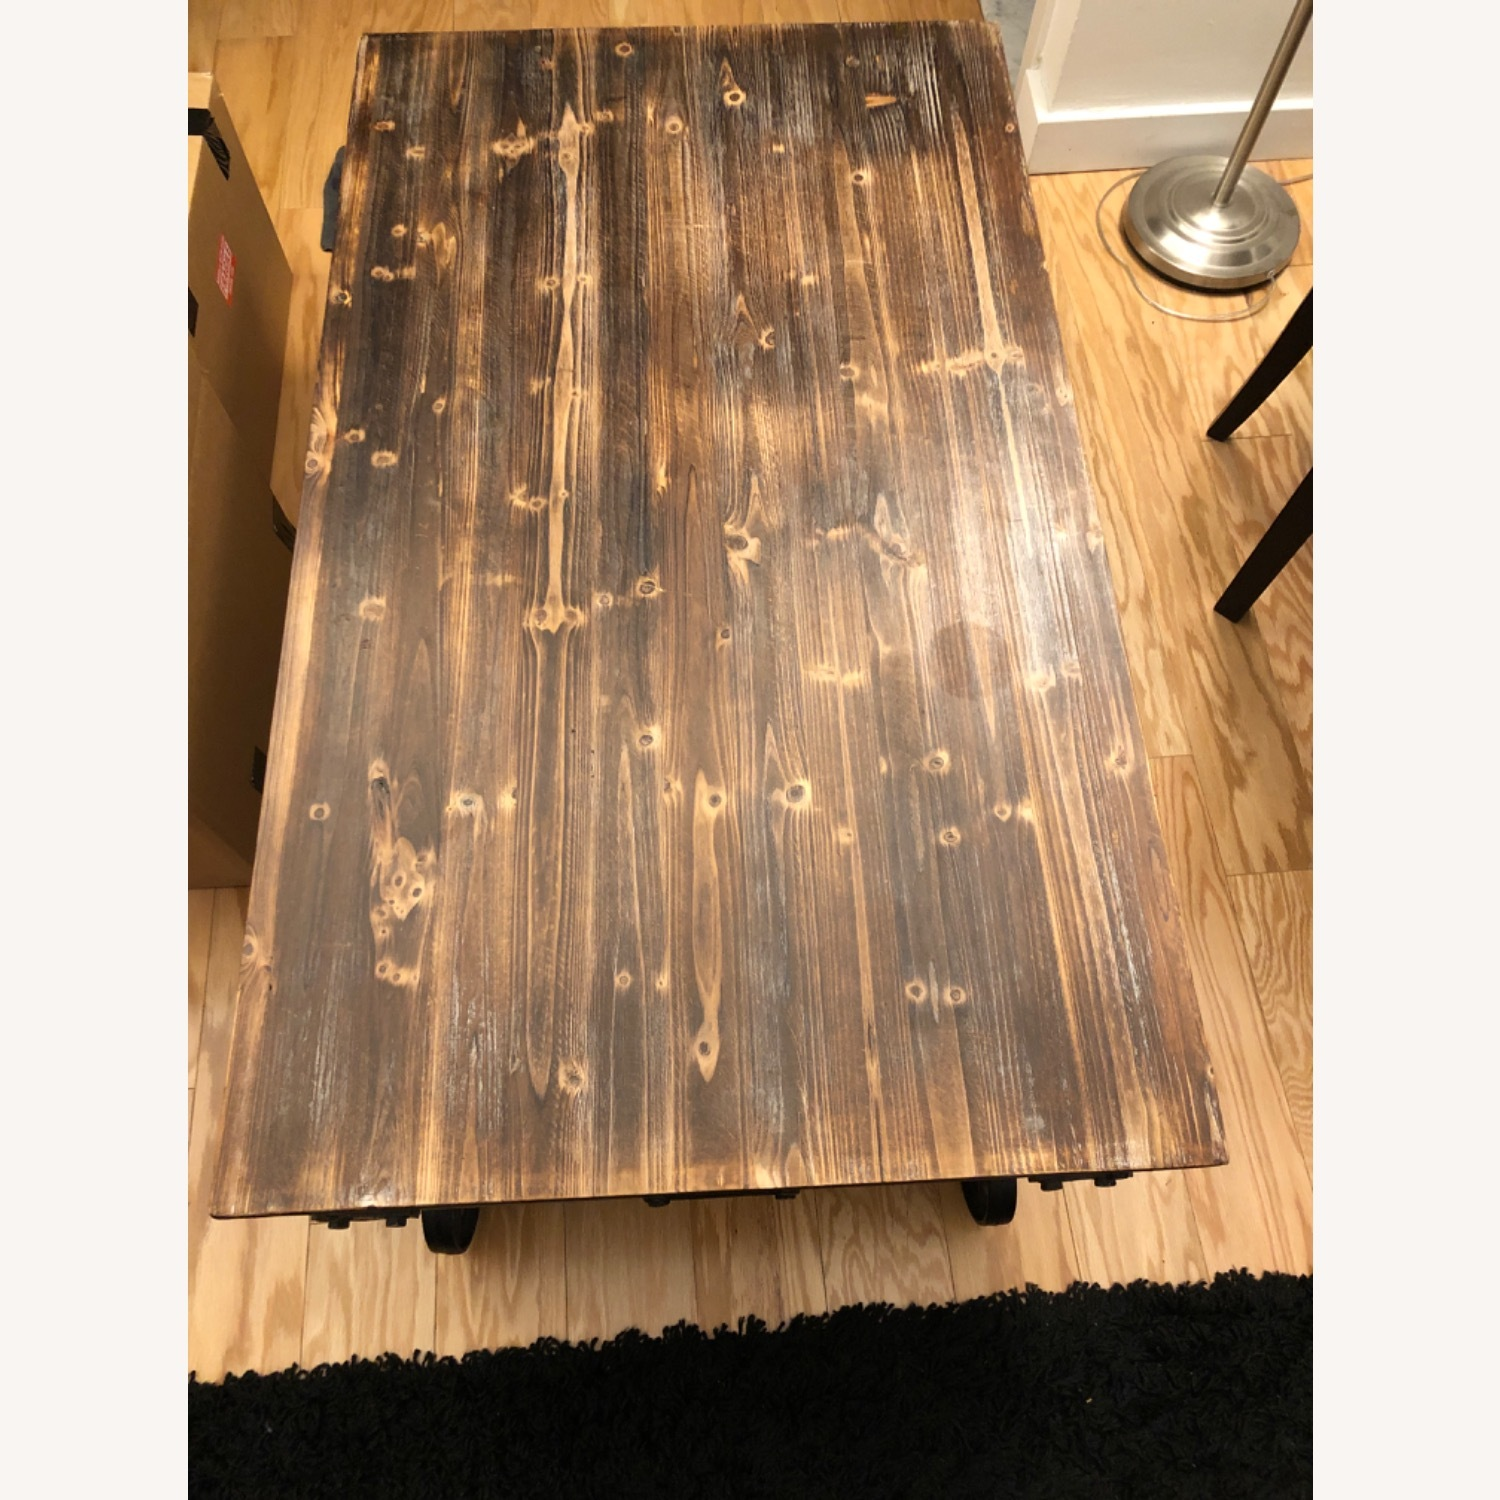 Rustic Wood Coffee Table - image-1